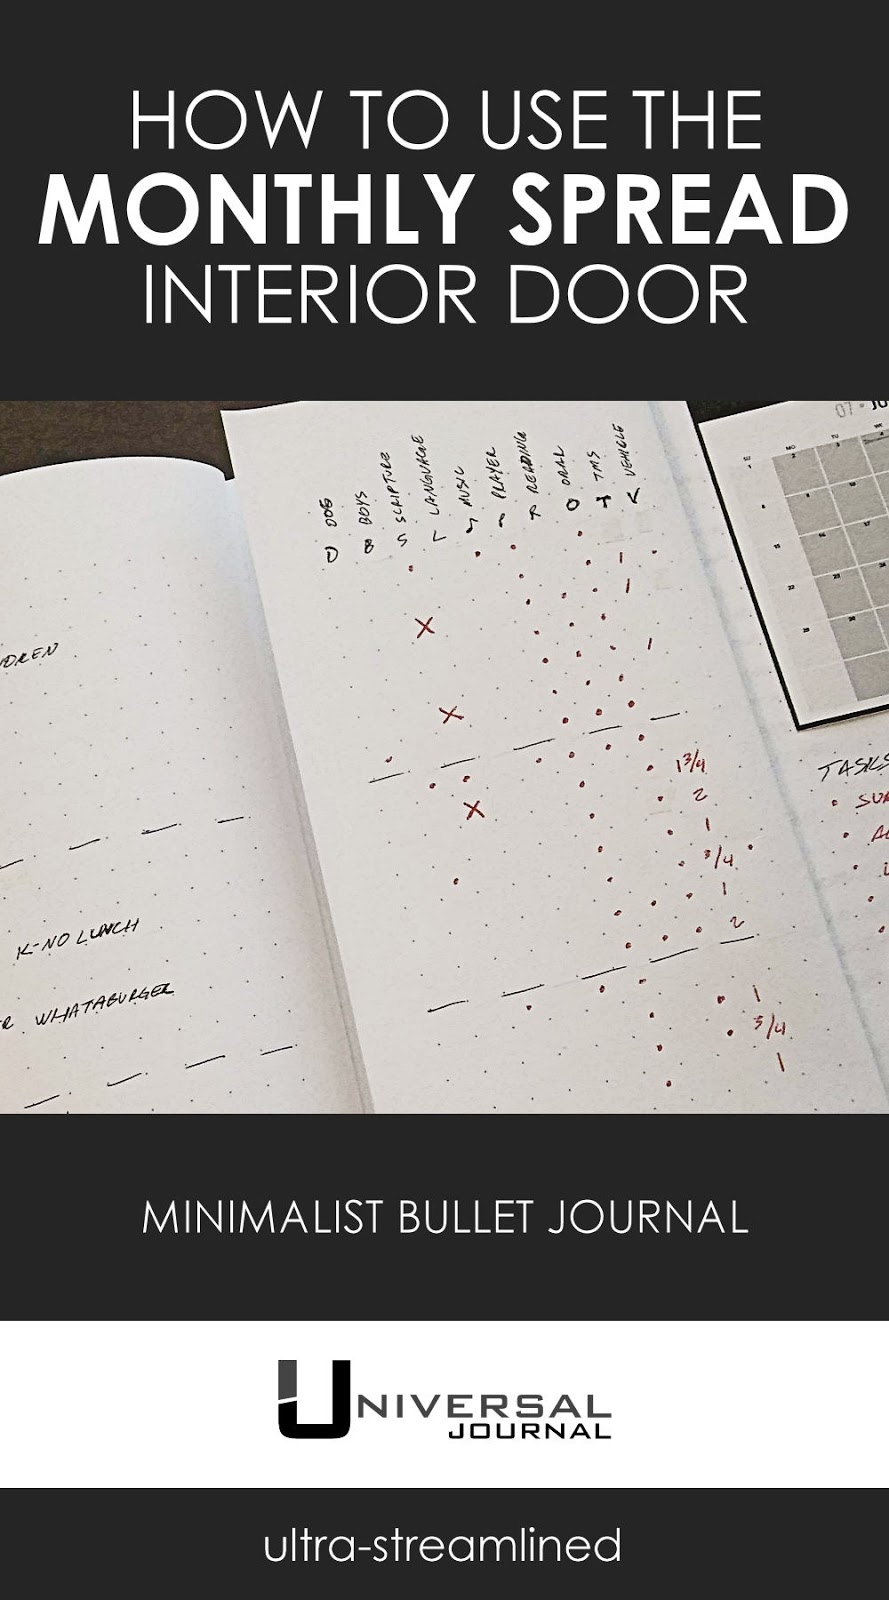 bullet journal minimalist monthly spread interior door